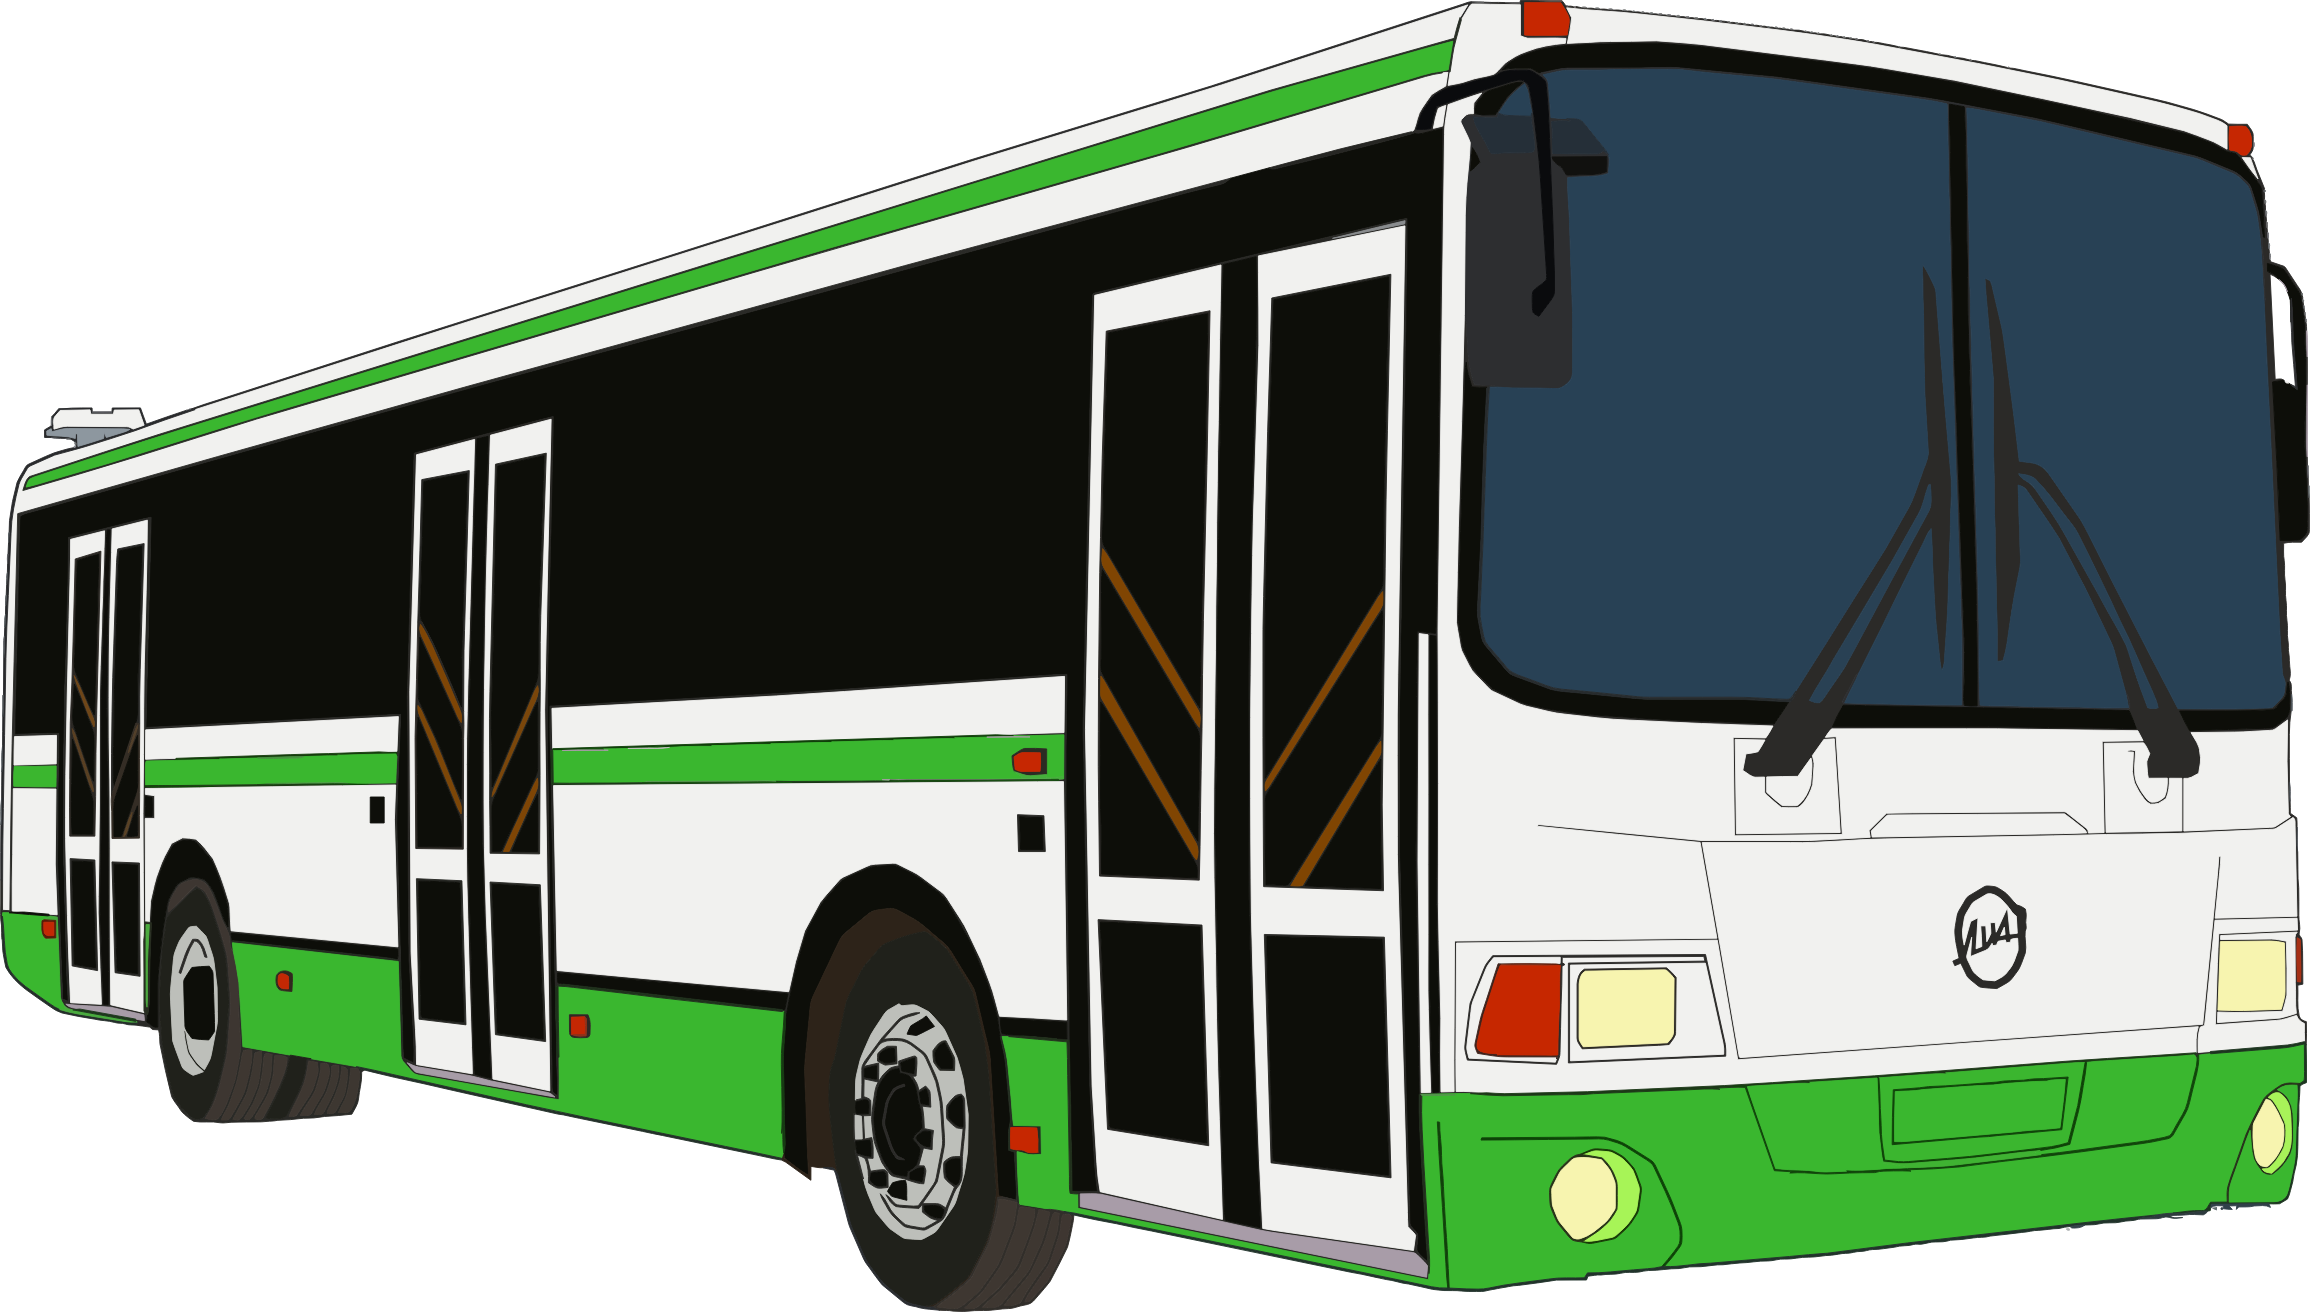 Bus clip art png. D icons free